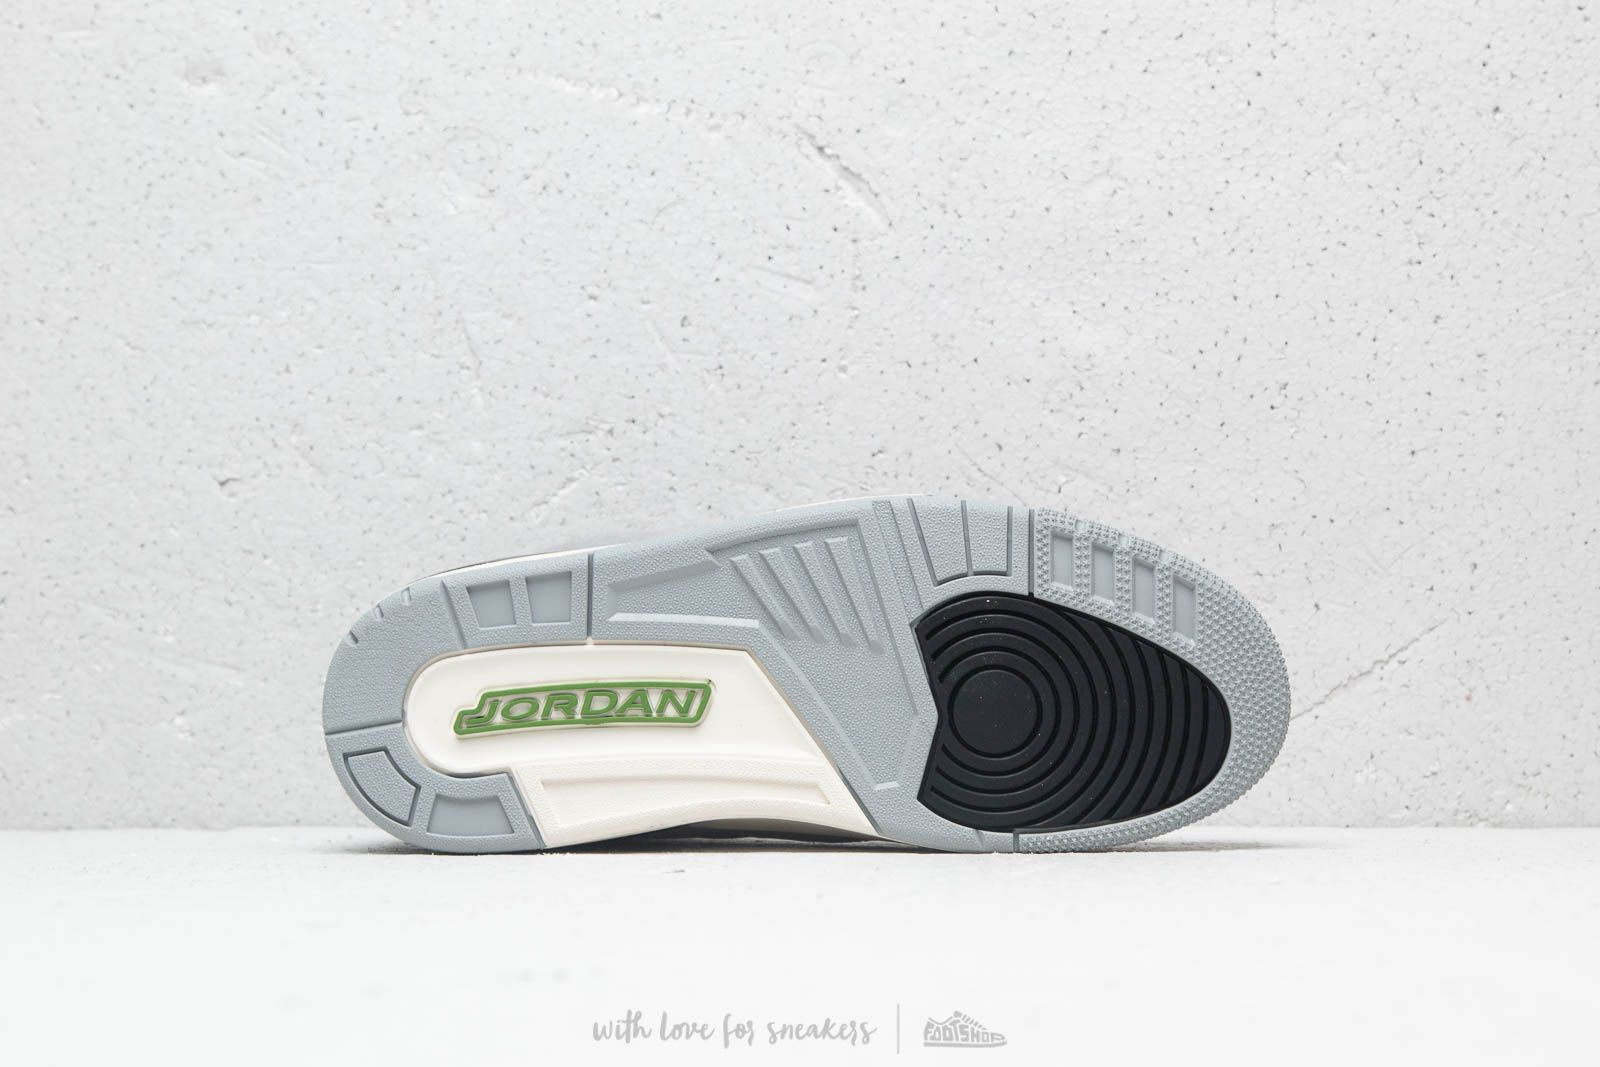 ChlorophyllFootshop Jordan Air 3 Grey Lt Smoke Retro f7vYb6gy